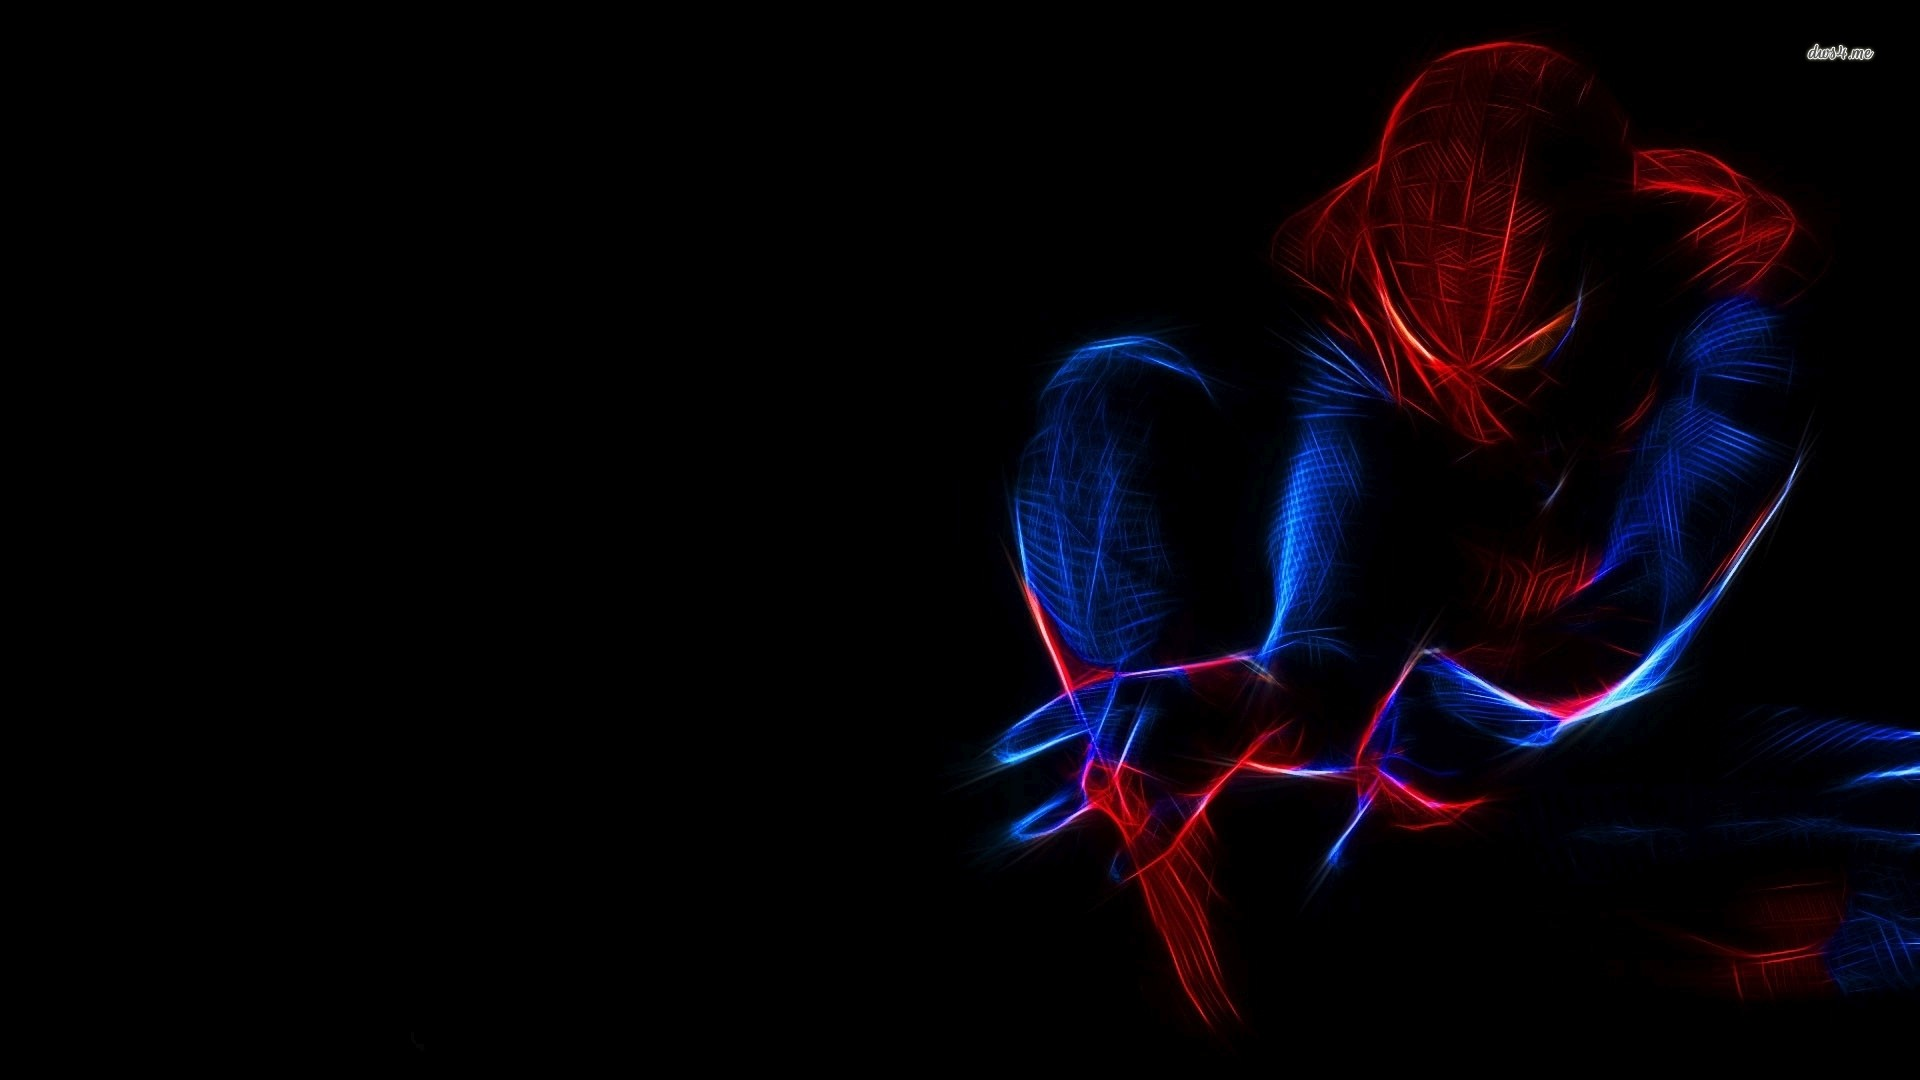 10 Best Spider Man 2099 Wallpaper Hd Full Hd 1920 1080 For: Spiderman Neon Red Wallpaper ·①